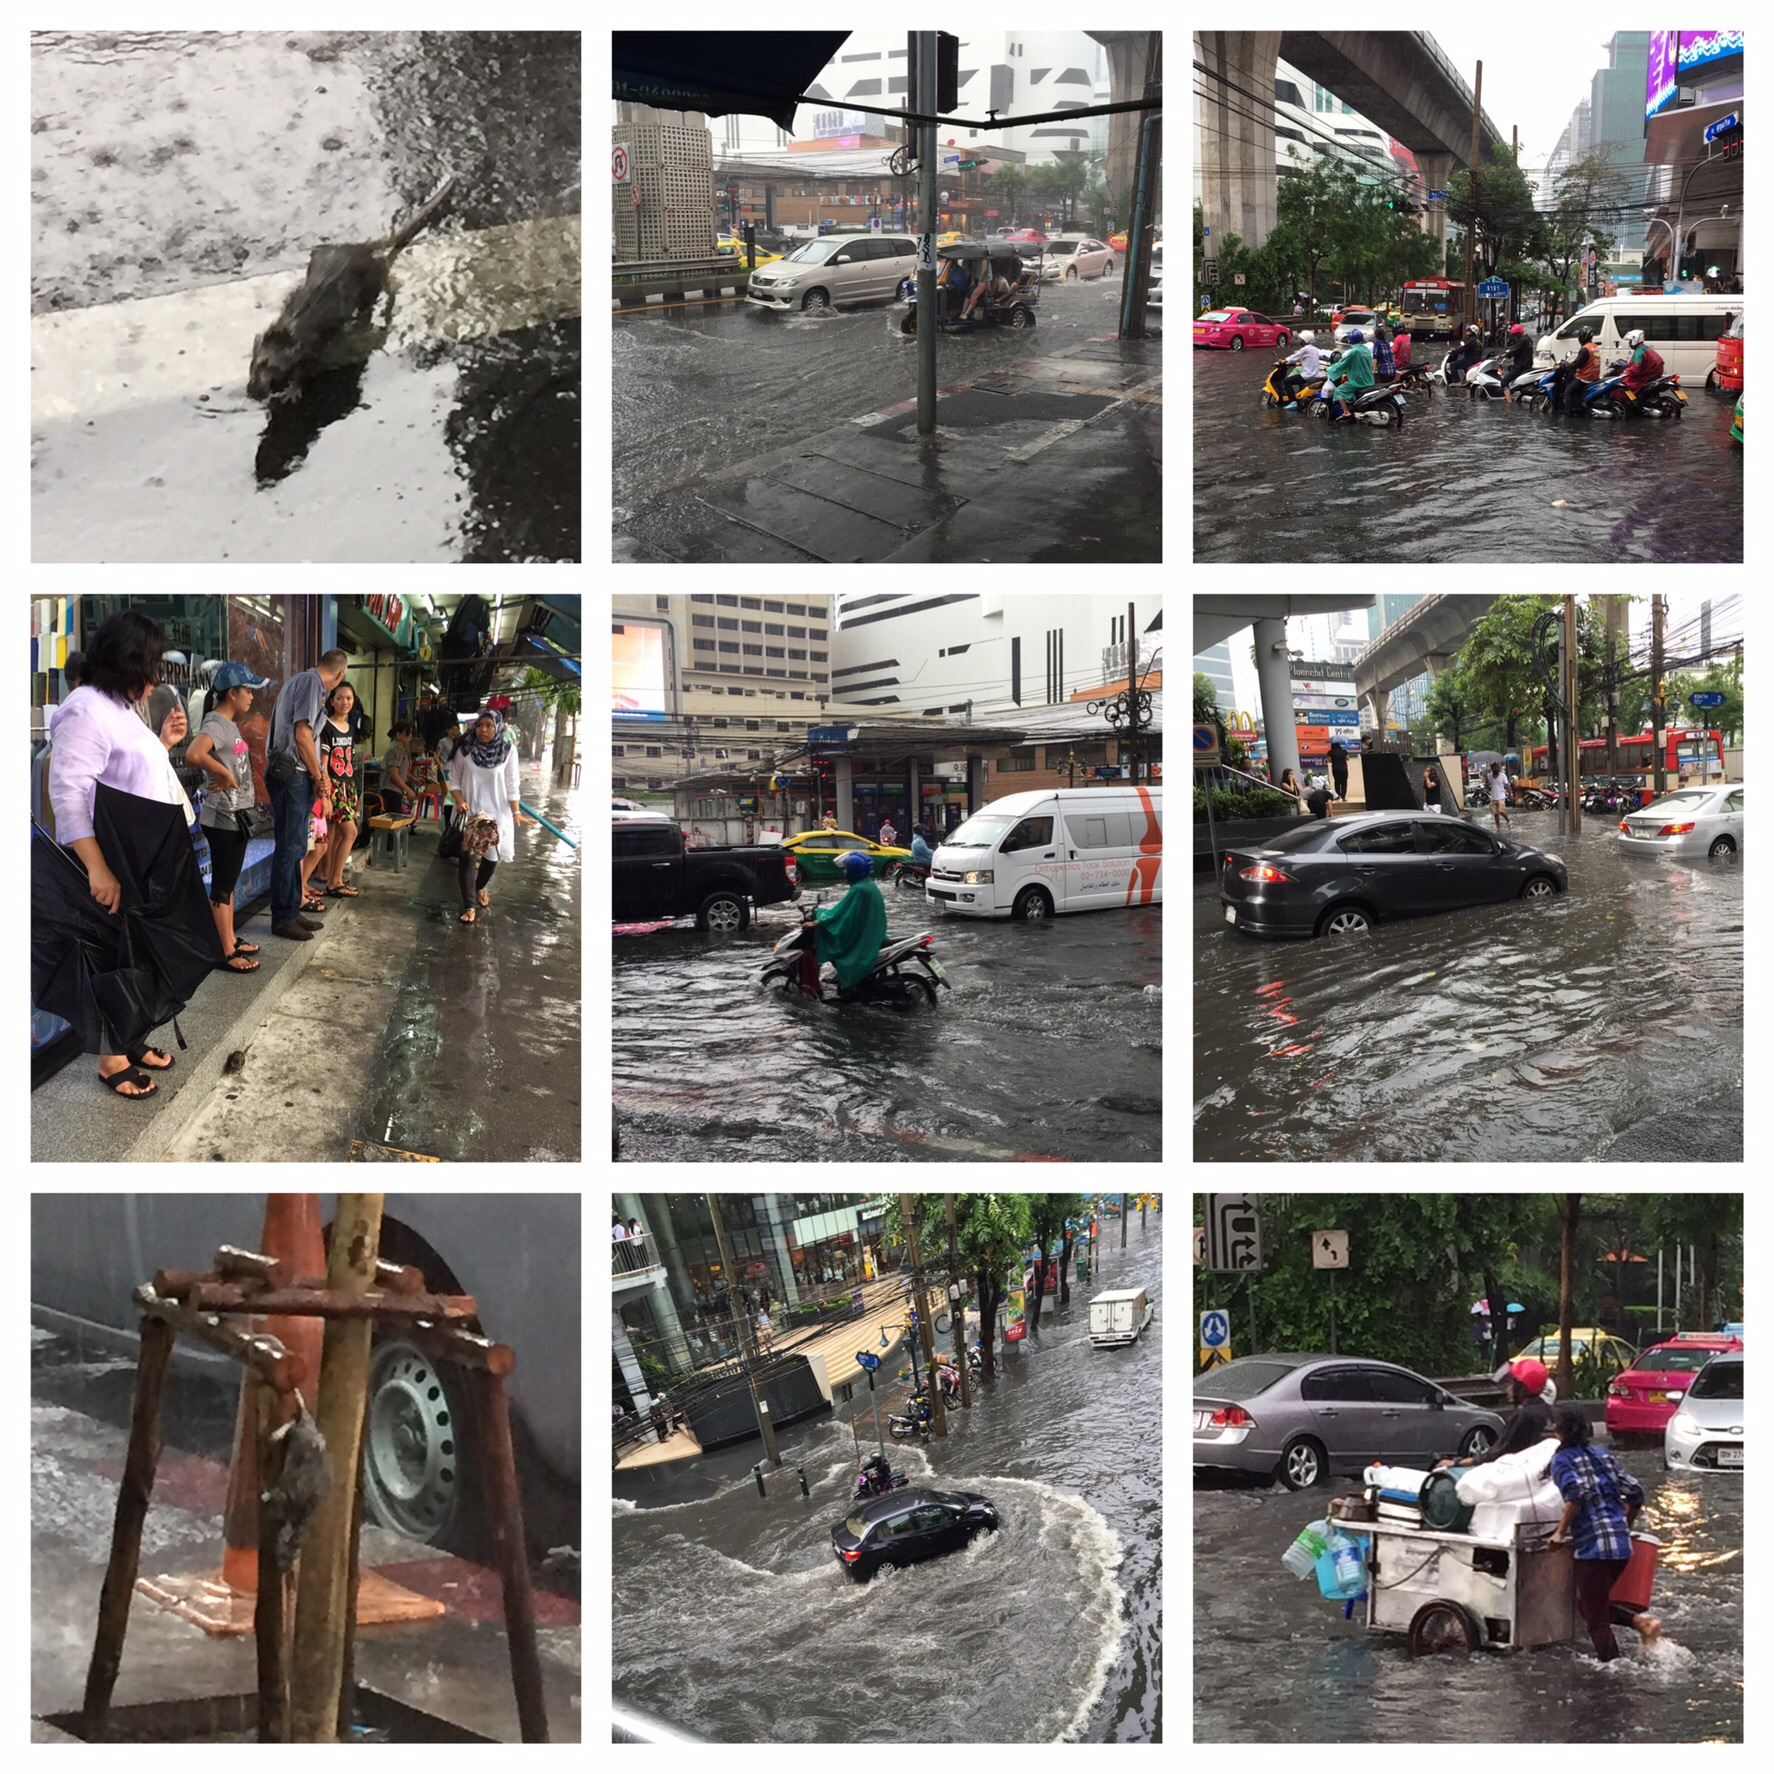 Clockwise from top left: one of the many wet rats, busy tuktuks, hardcore bikers, water level, street vendor, making waves, another rat friend, my fellow shelter-seekers. Centre: the scooter just managed